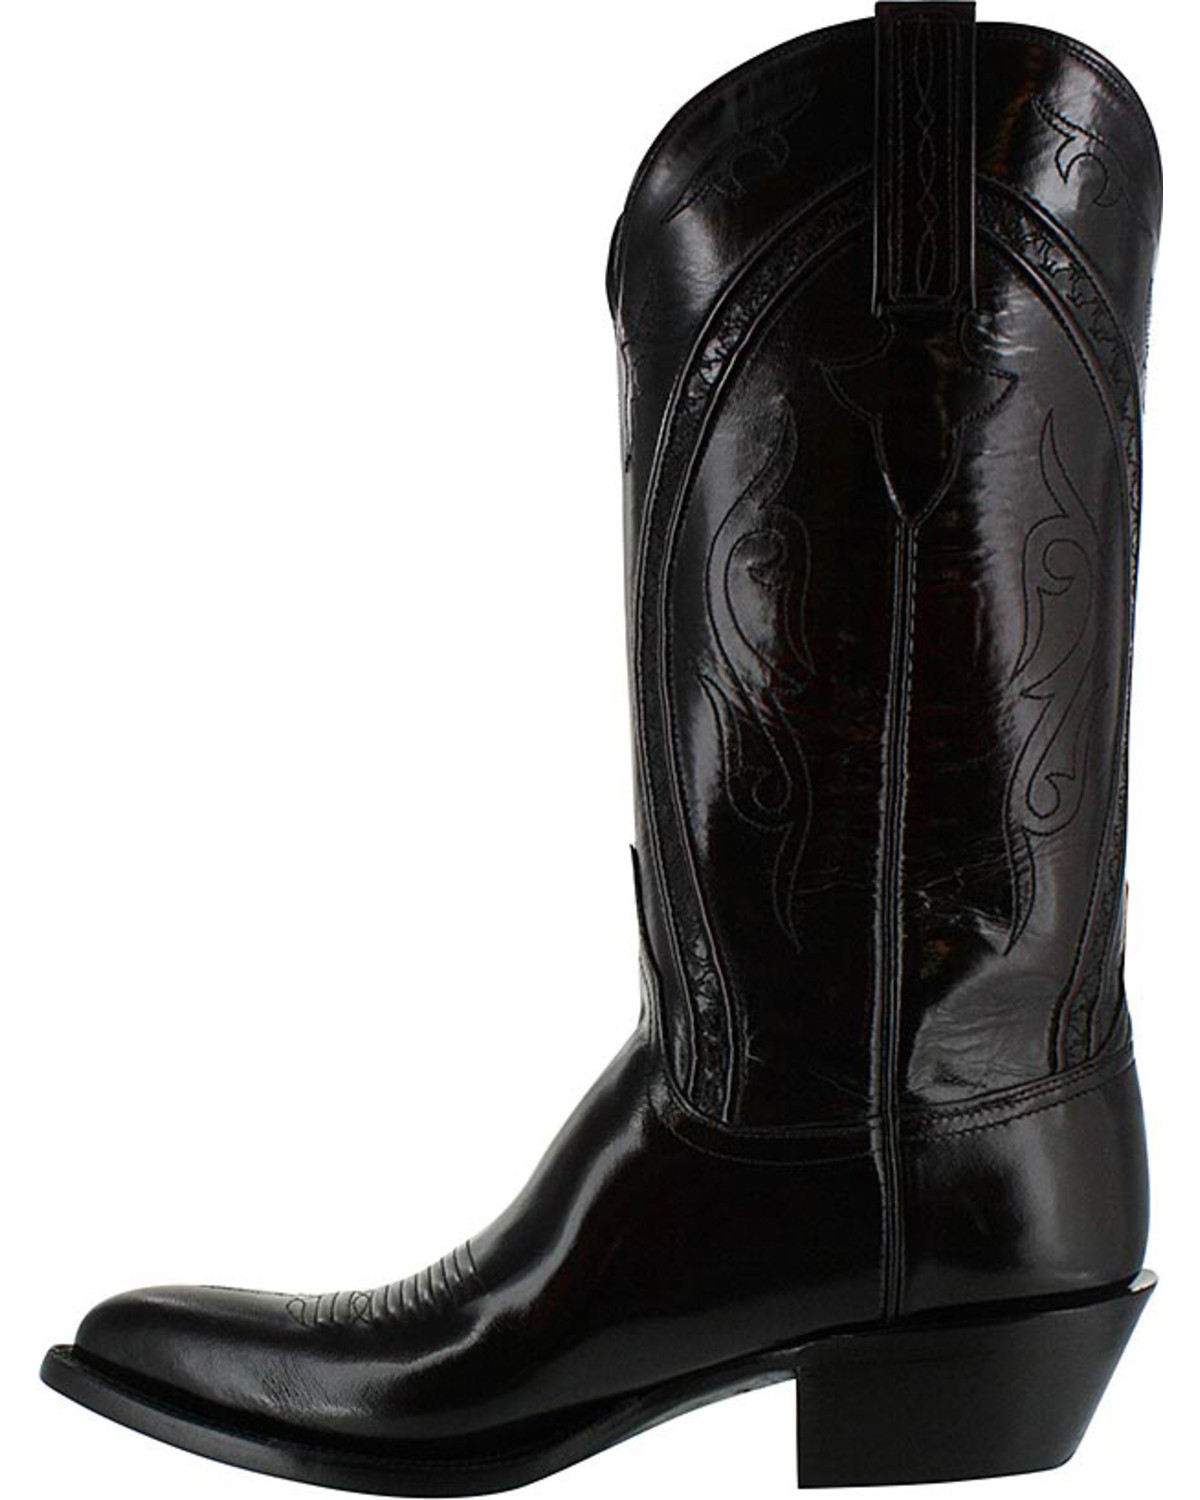 Lucchese Men S Handmade Black Western Boots Pointed Toe